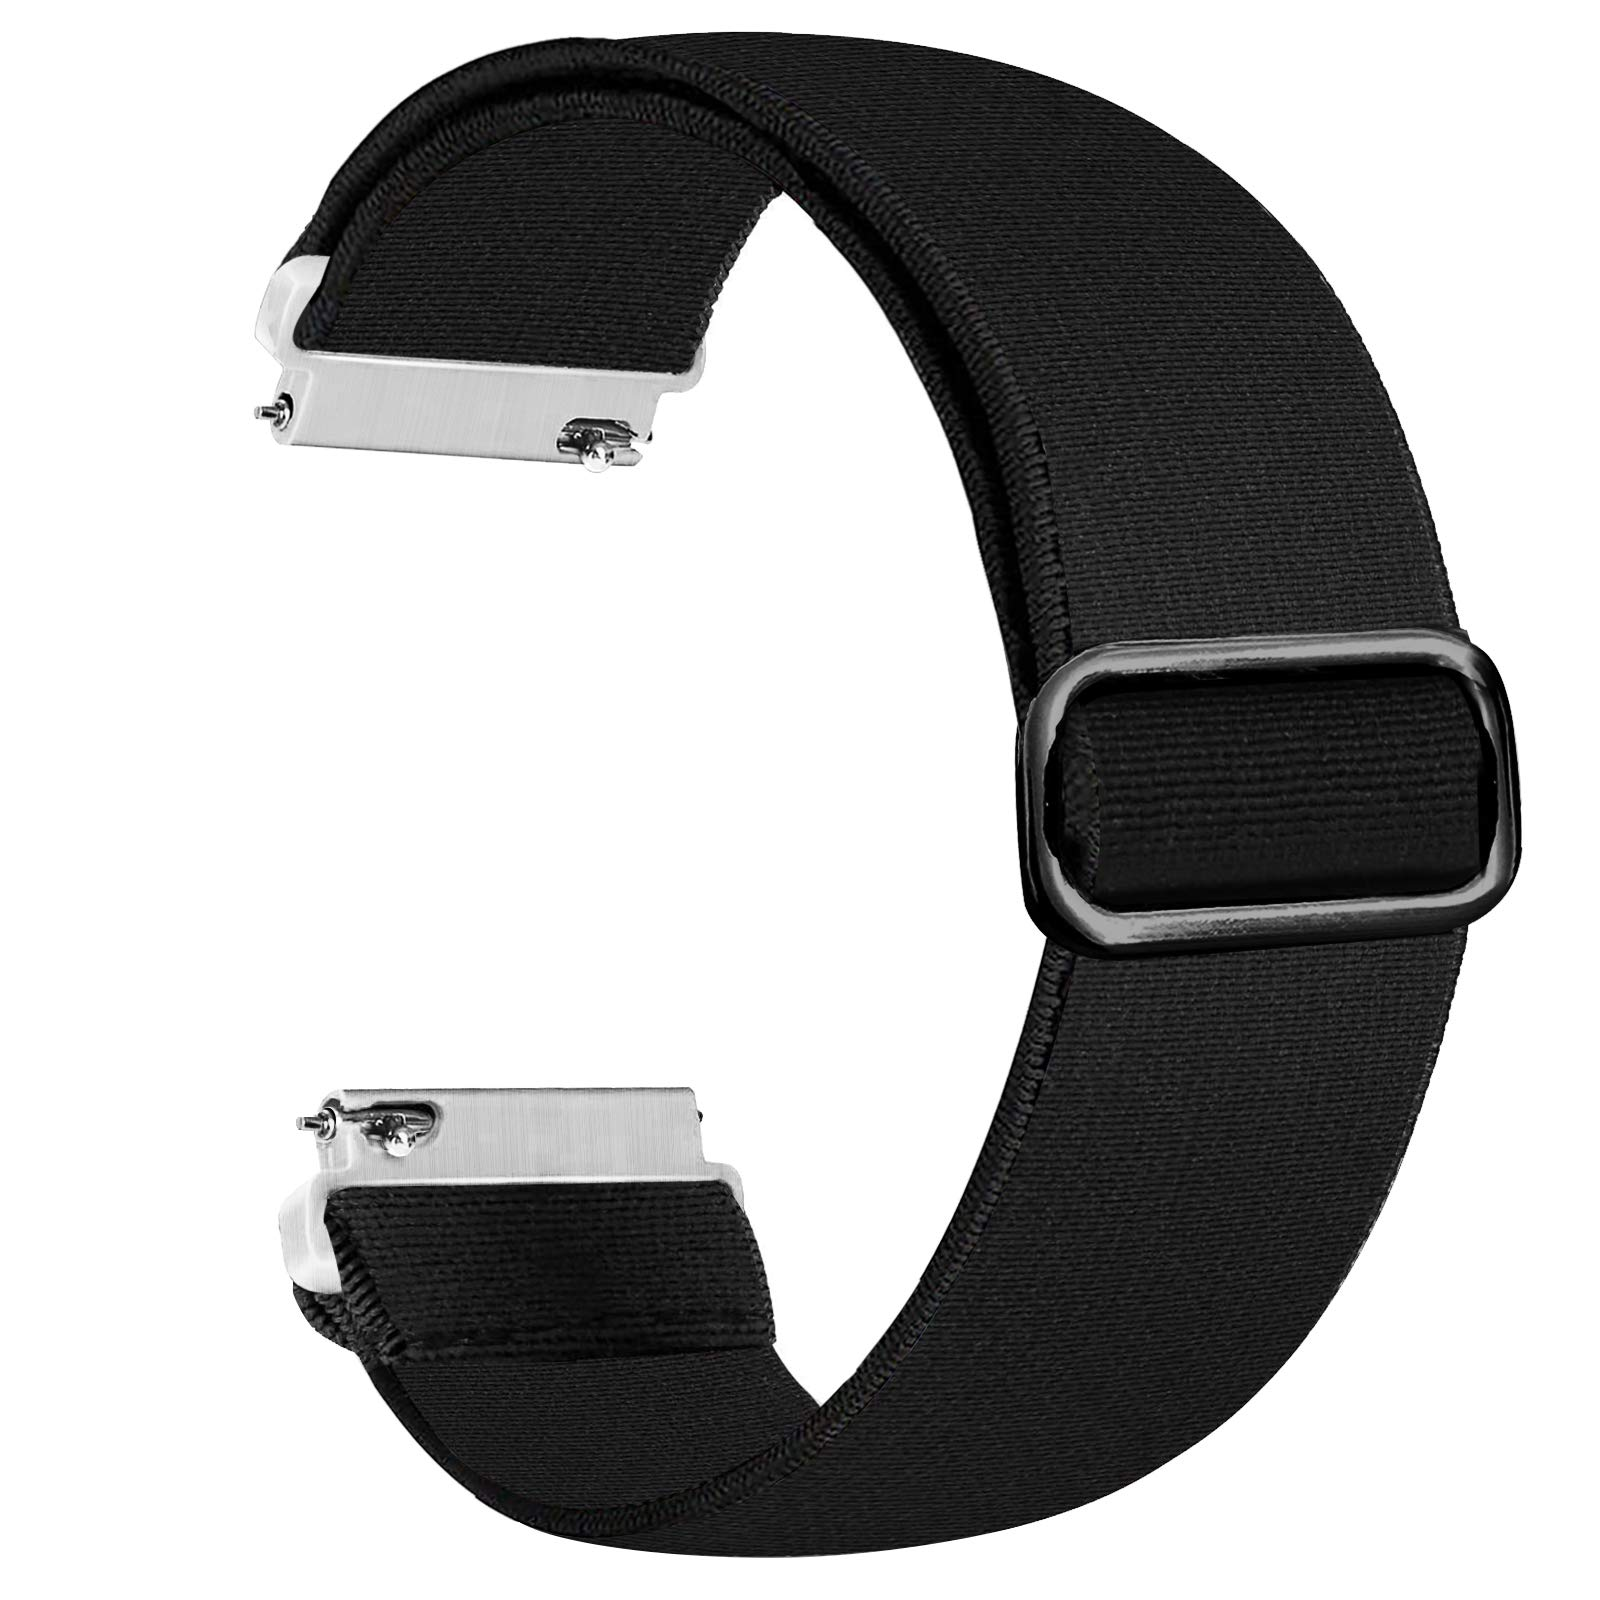 Panrock 20mm/22mm Watch Band, Adjustable Stretchy Watch Band Elastic Replacement Strap for Women Man